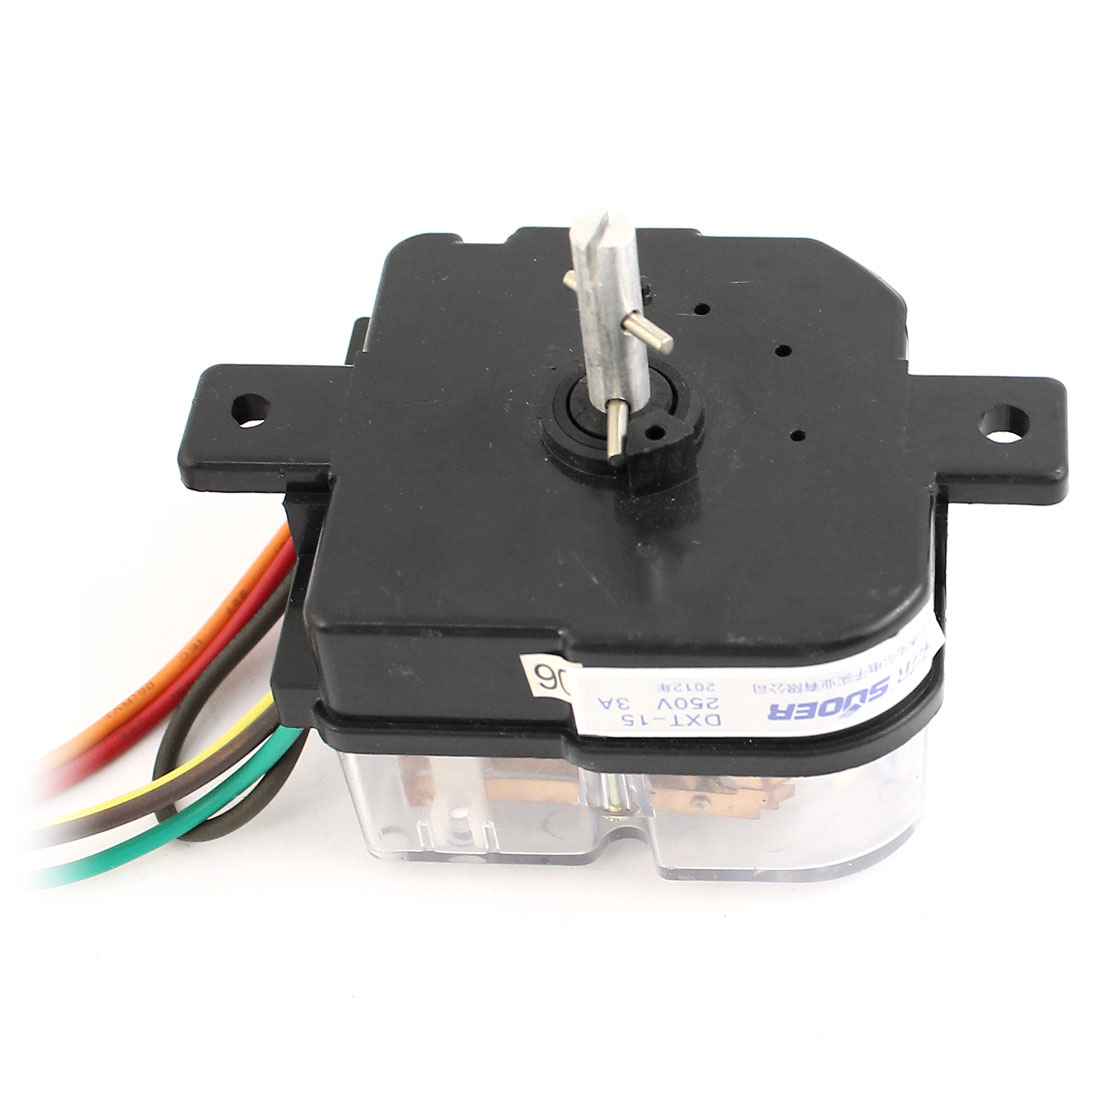 AC250V 3A 5 Wires 45 Degree Rotary Shaft Washing Machine Washer Timer Black